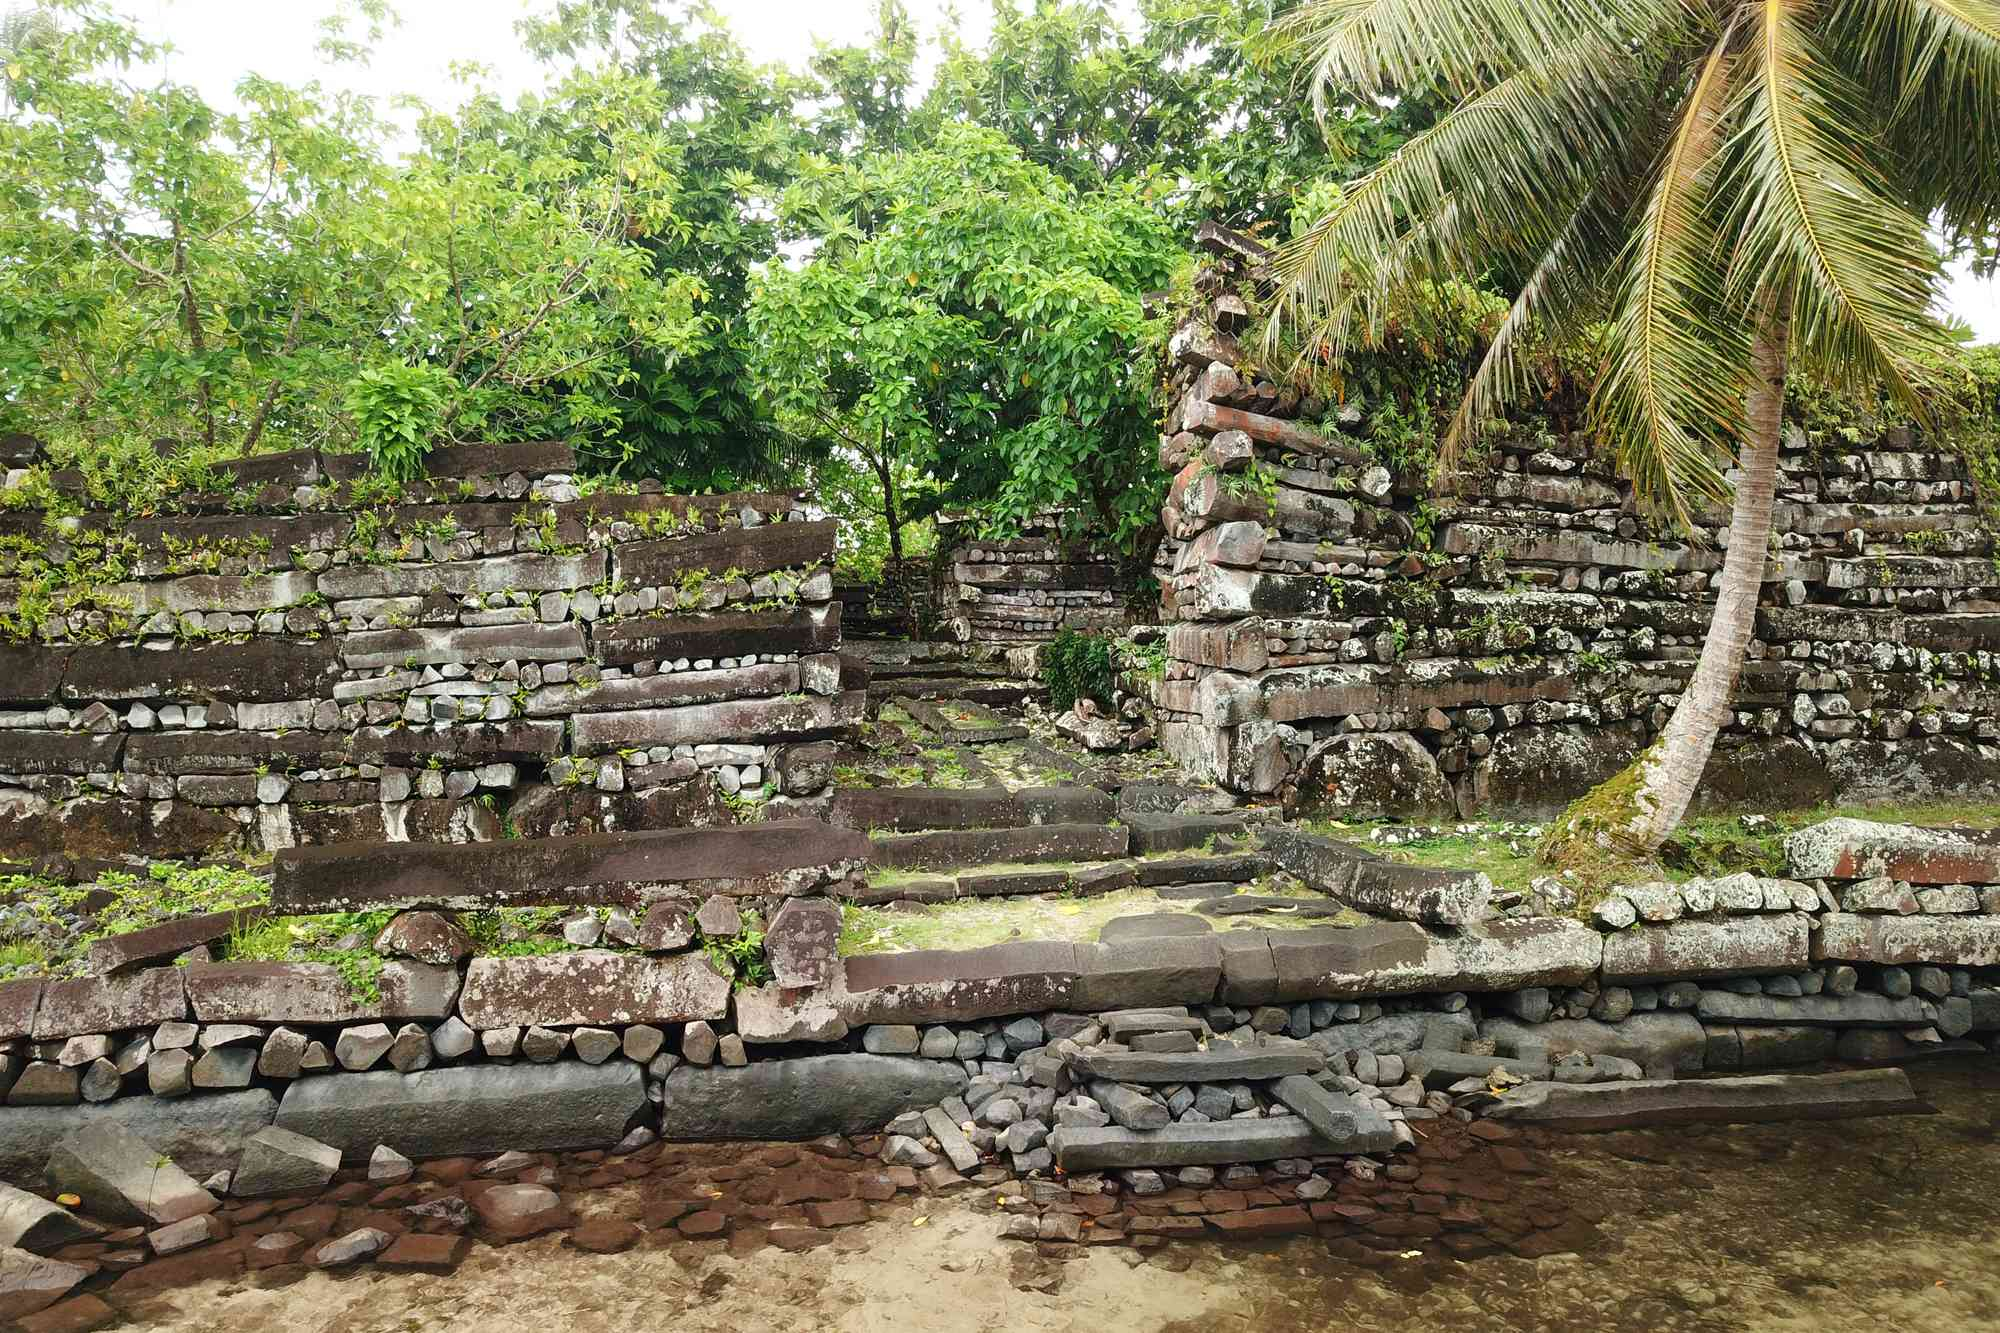 Nan Madol stone canal covered in tropical vegetation